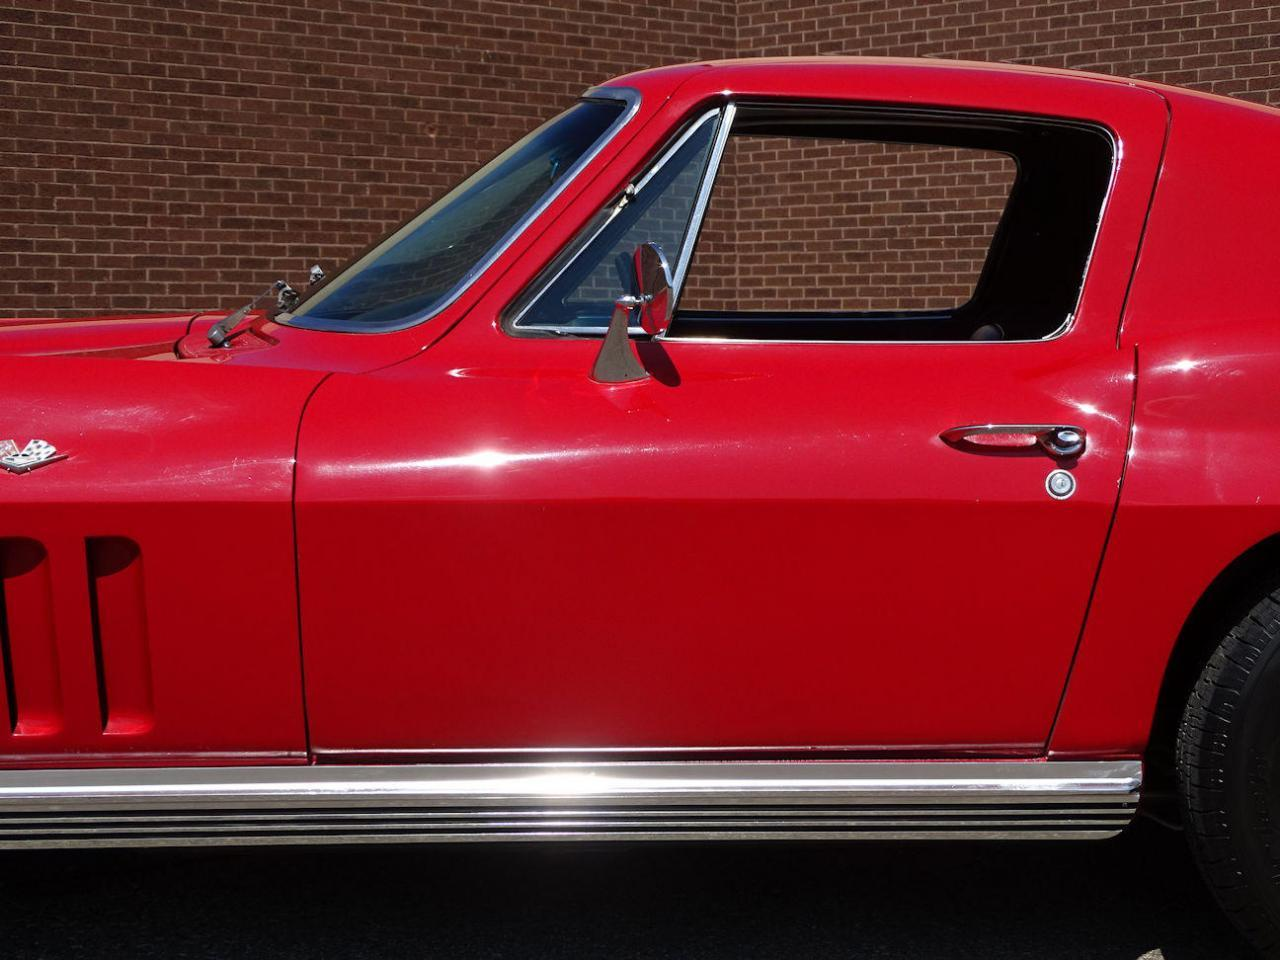 Large Picture of 1966 Corvette located in Dearborn Michigan - $68,000.00 Offered by Gateway Classic Cars - Detroit - LH96